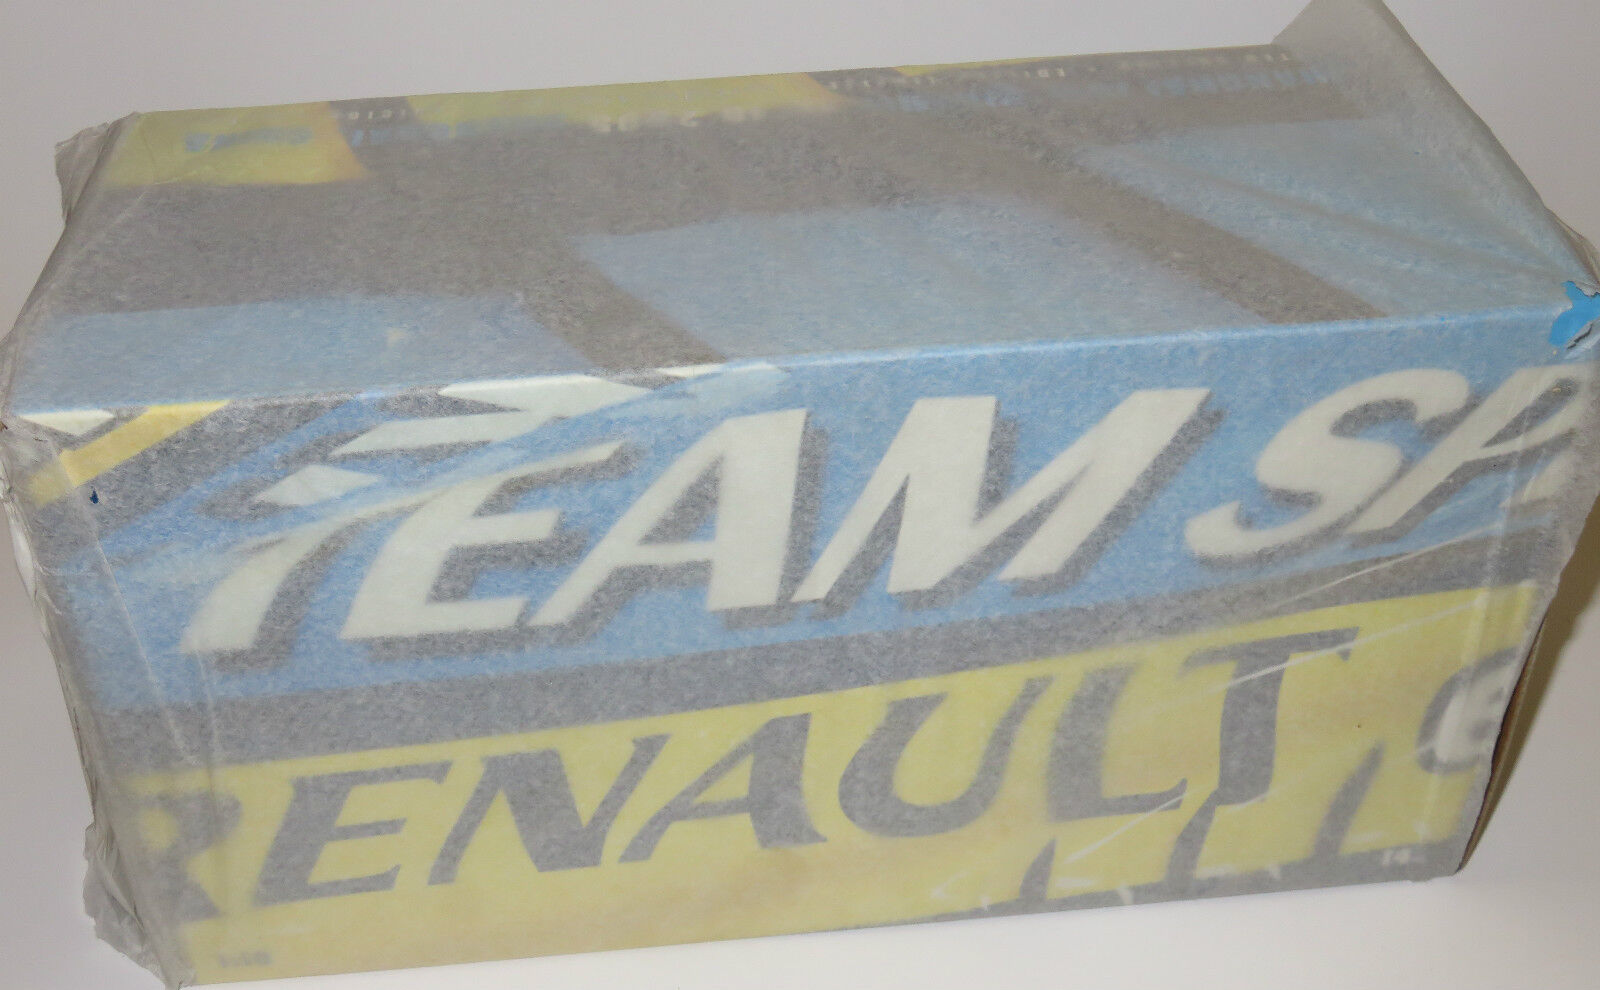 1 18 Renault 2005 World Champion Constructors Edition in case Alonso Fisichella